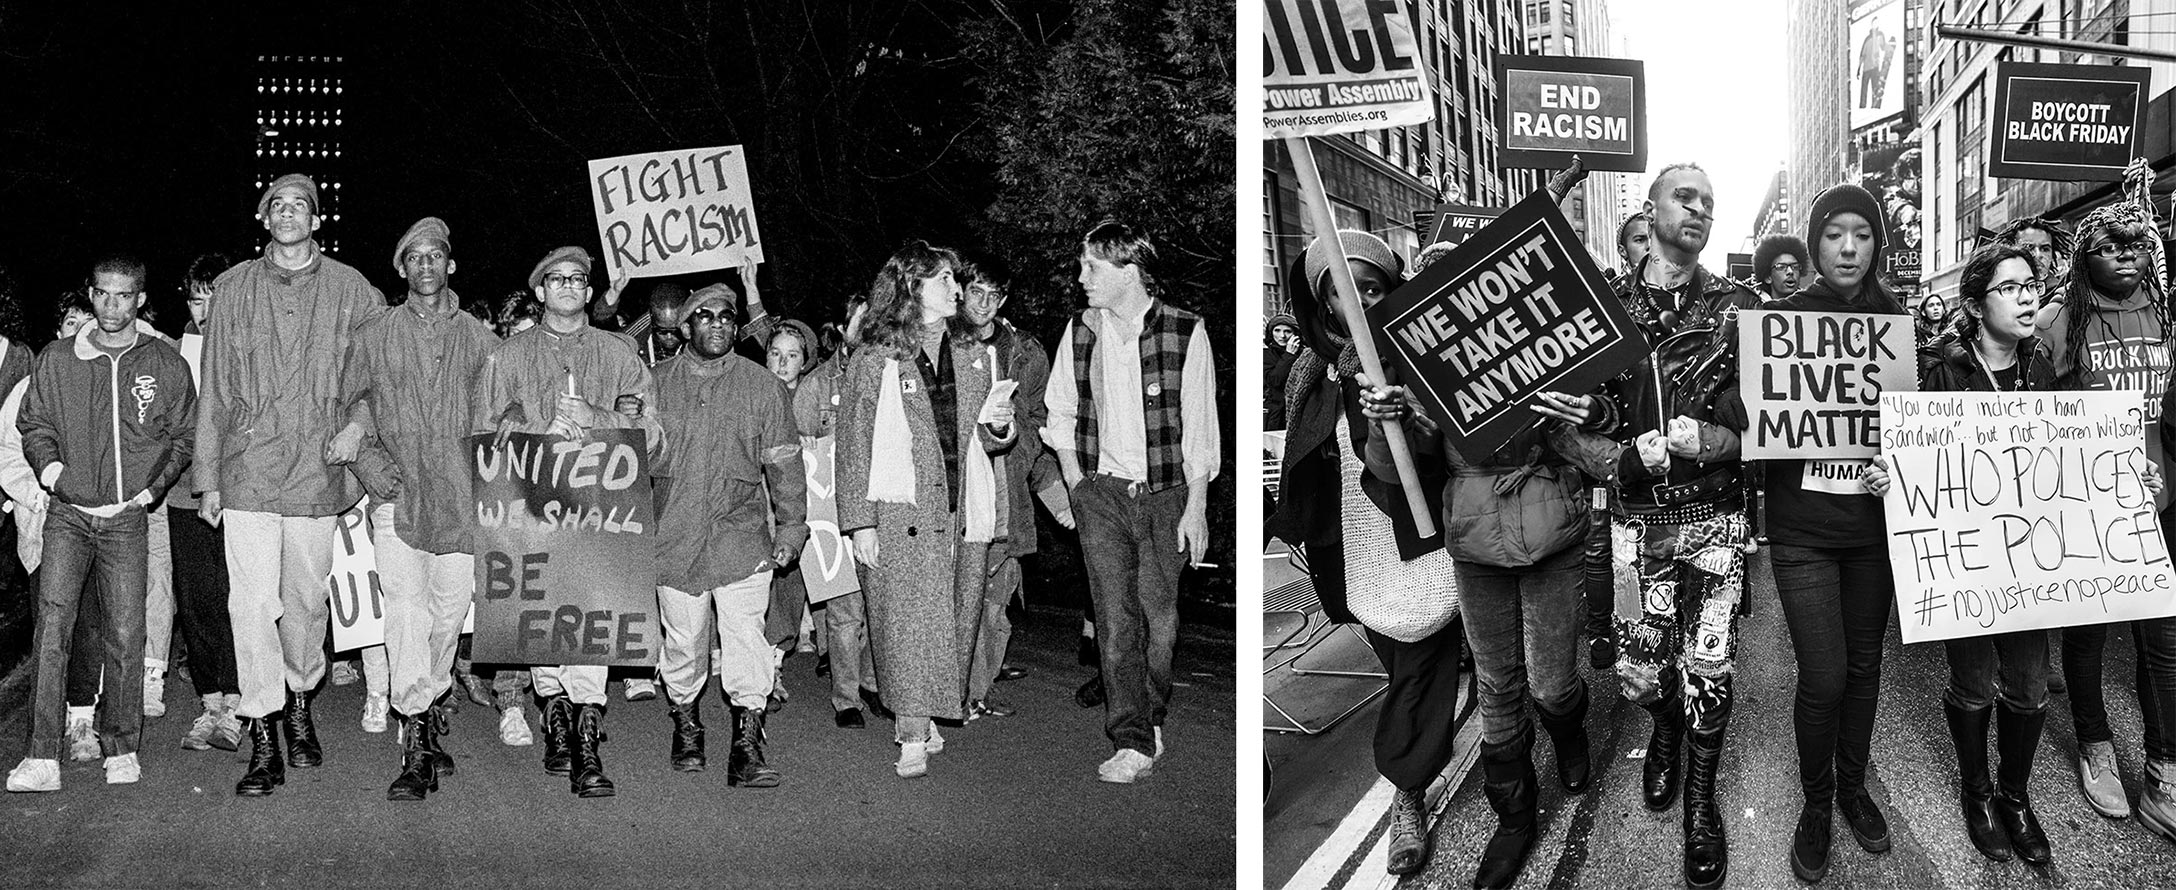 UMass students march for racial justice in 1987 (left). A crowd of protesters on a New York City street hold signs reading We Won't Take it Anymore, Black Lives Matter, and other slogans (right).